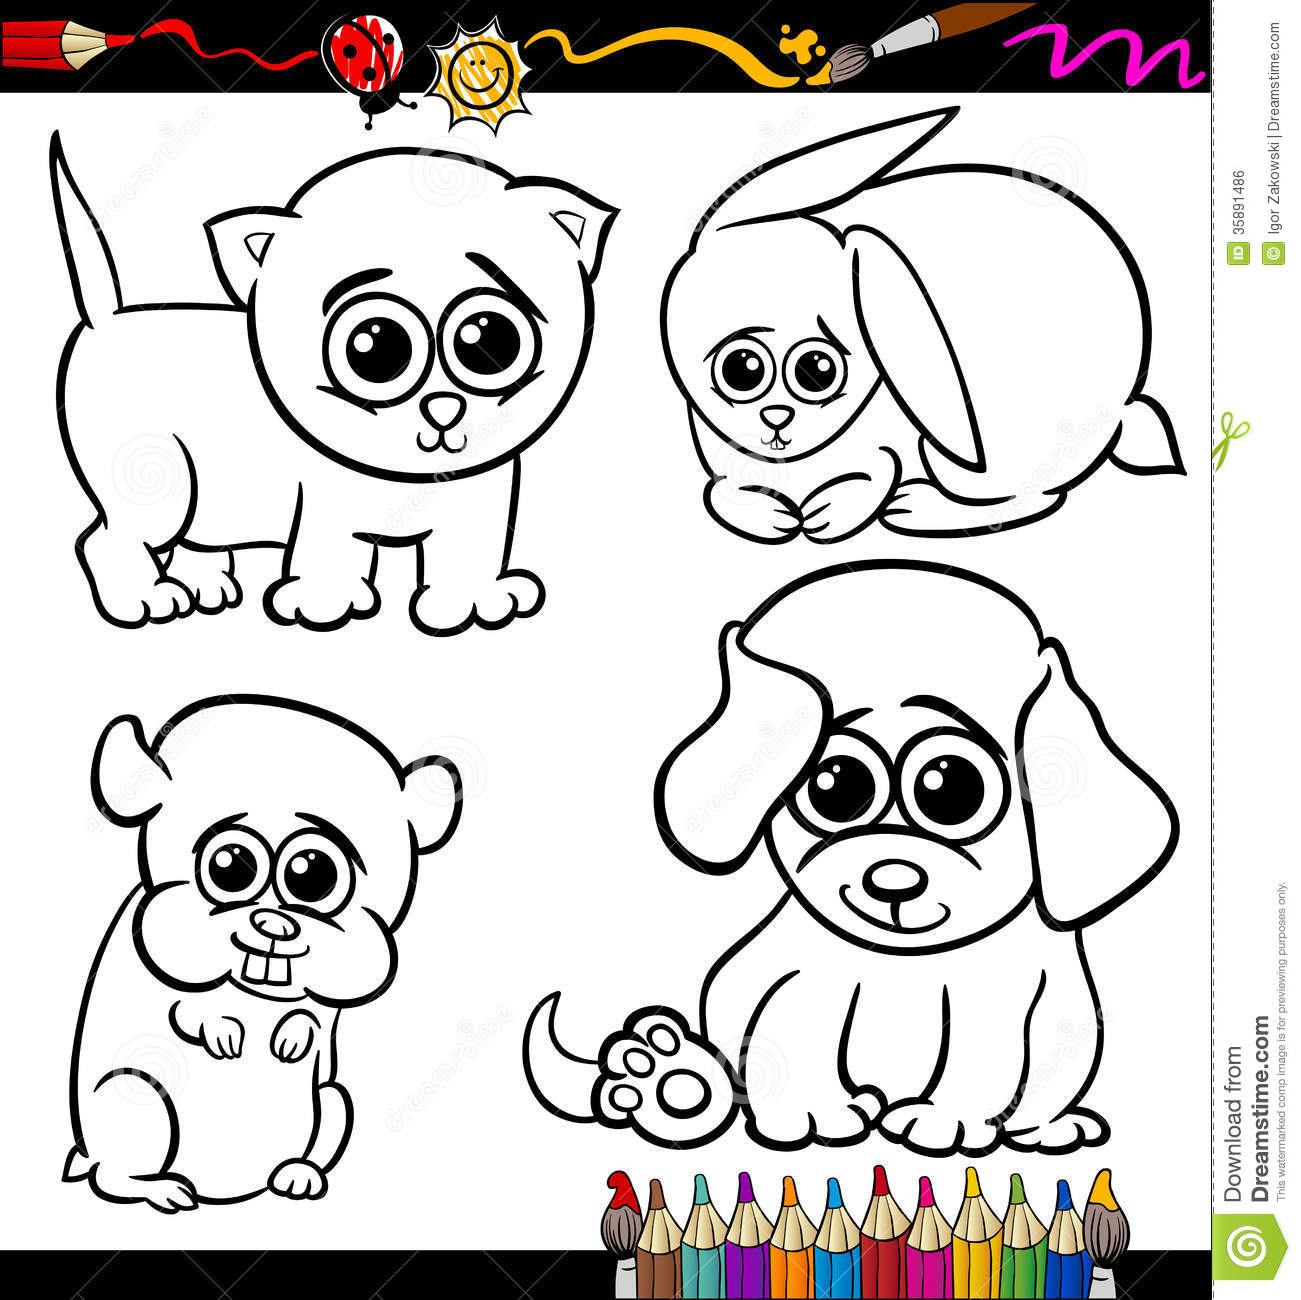 Baby pets cartoon set coloring page royalty free stock Adorable animals coloring book